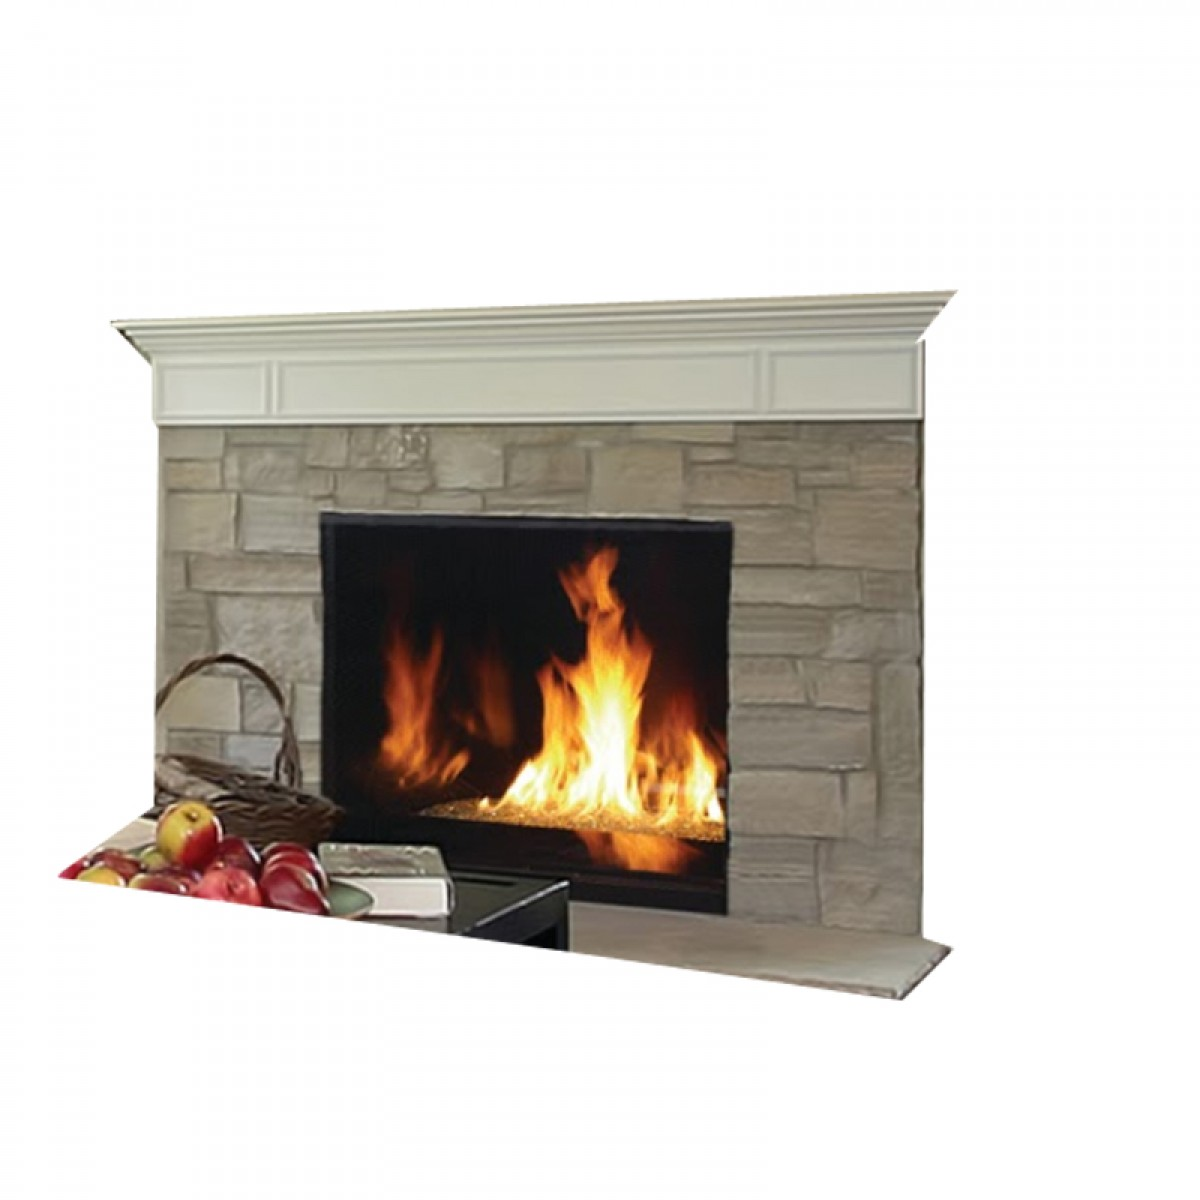 Ihp Superior Drc Direct Vent Louverless Gas Fireplace